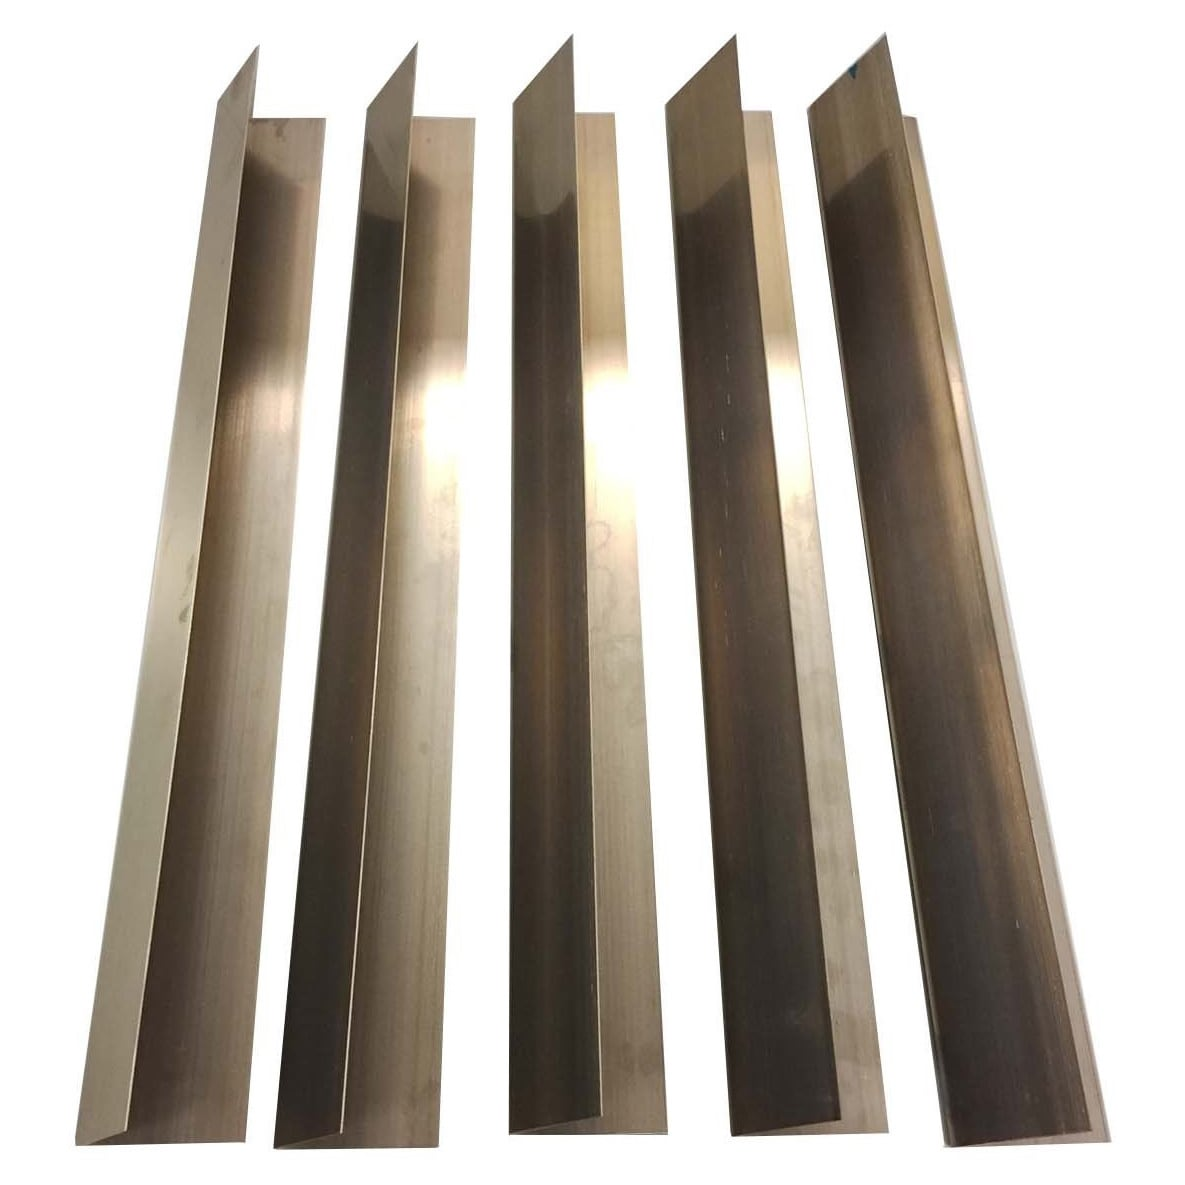 5pk Replacement Long Lasting Stainless Steel Flavorizer Bars Fits Weber Grills Compatible With Part 7535 21 5 X 1 875 X 1 875 Overstock 14139650